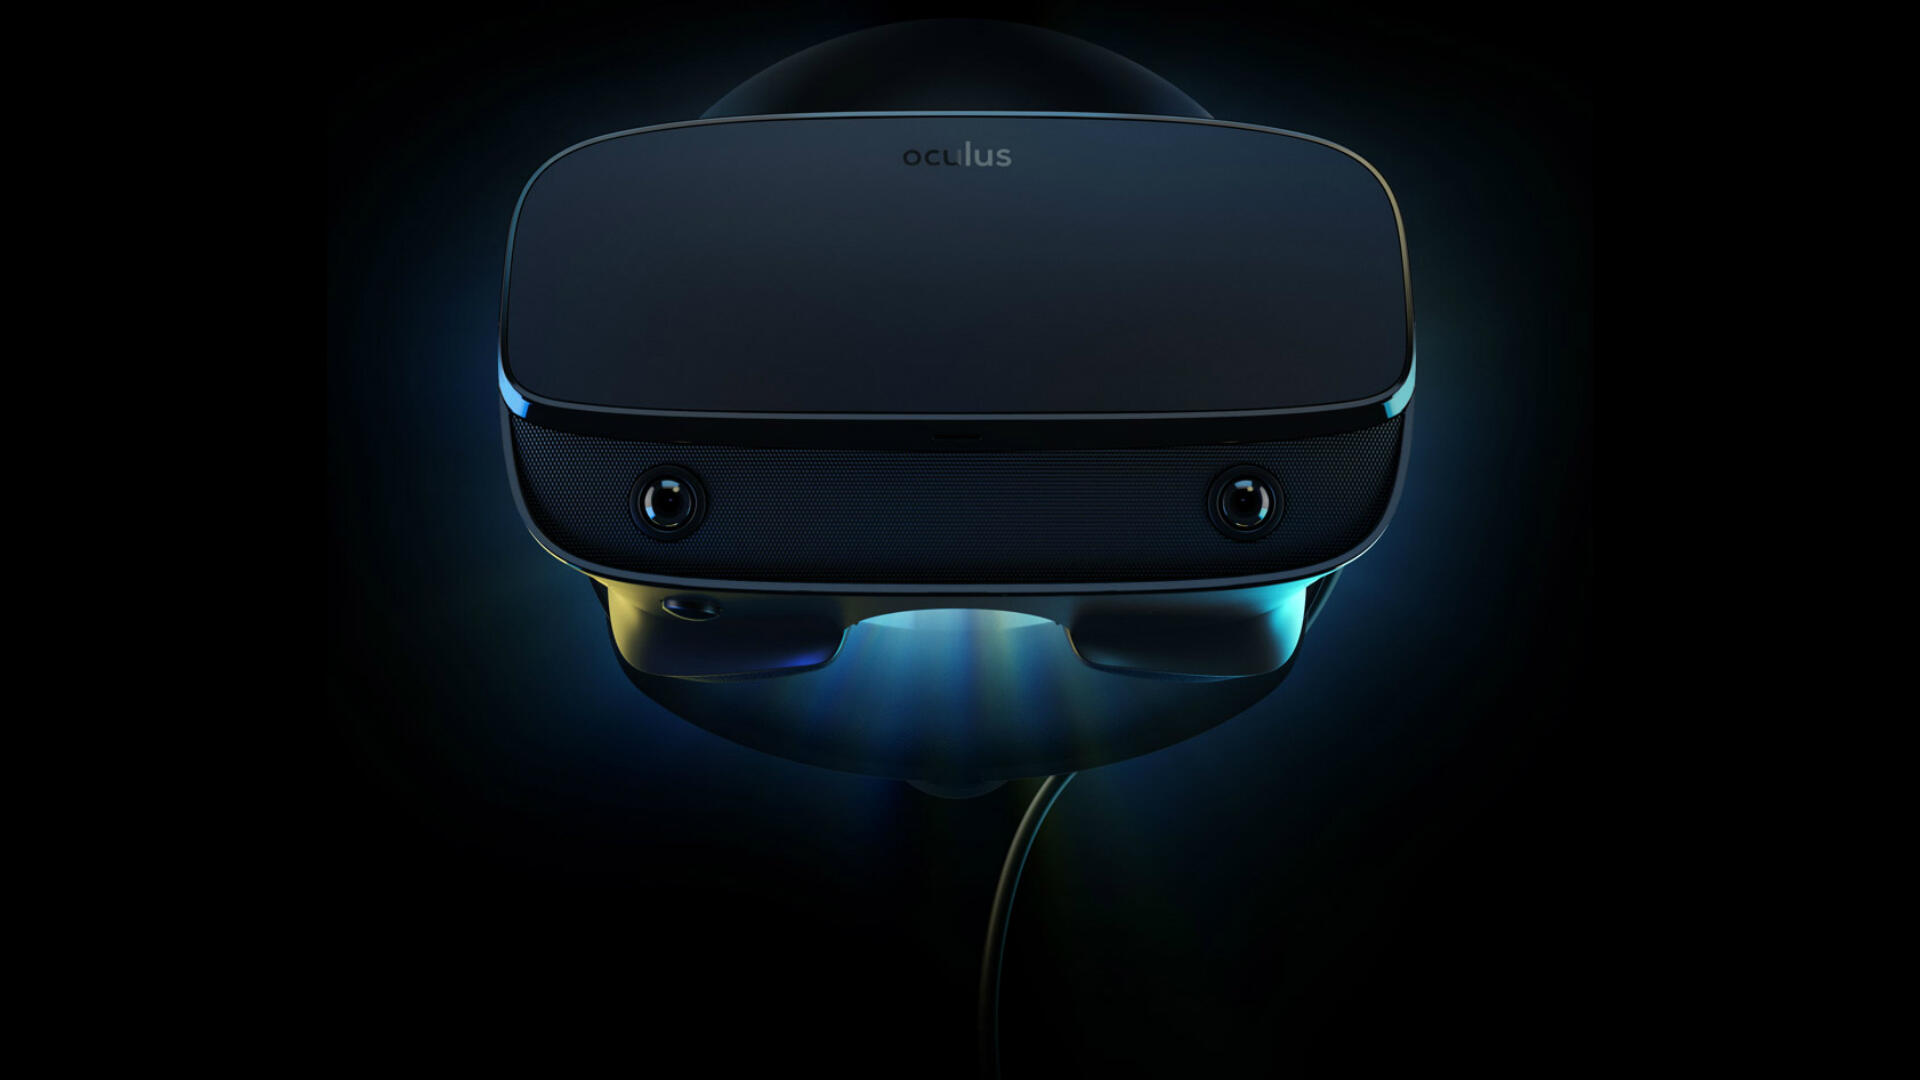 Oculus Launching the Rift S This Spring for $399